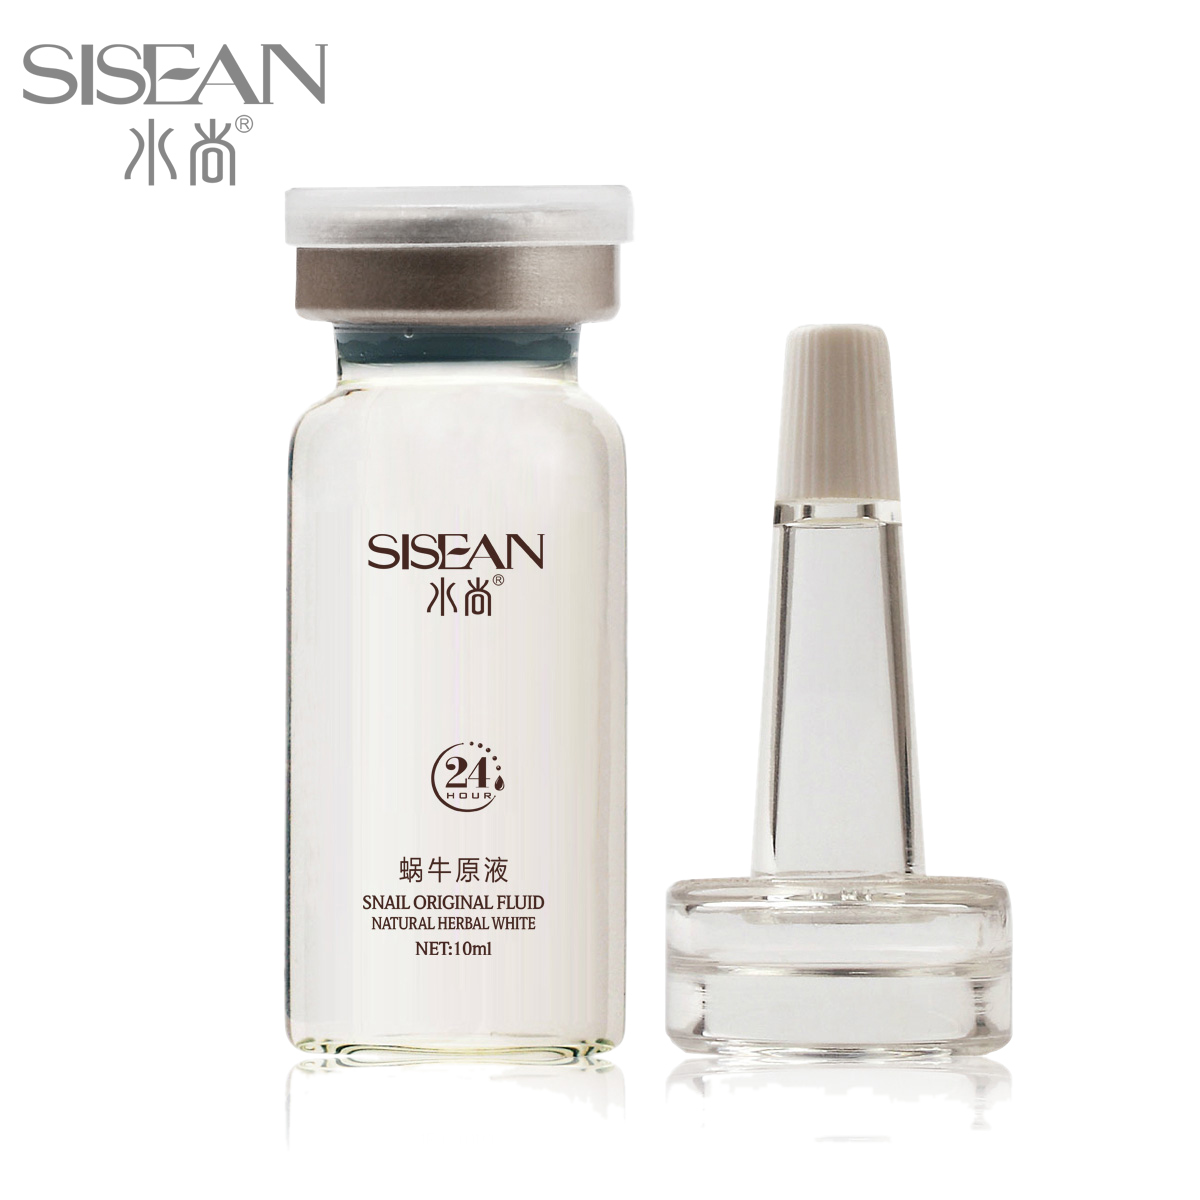 Snail liquid capillarie pores blemish whitening essence product scar moisturizing(China (Mainland))